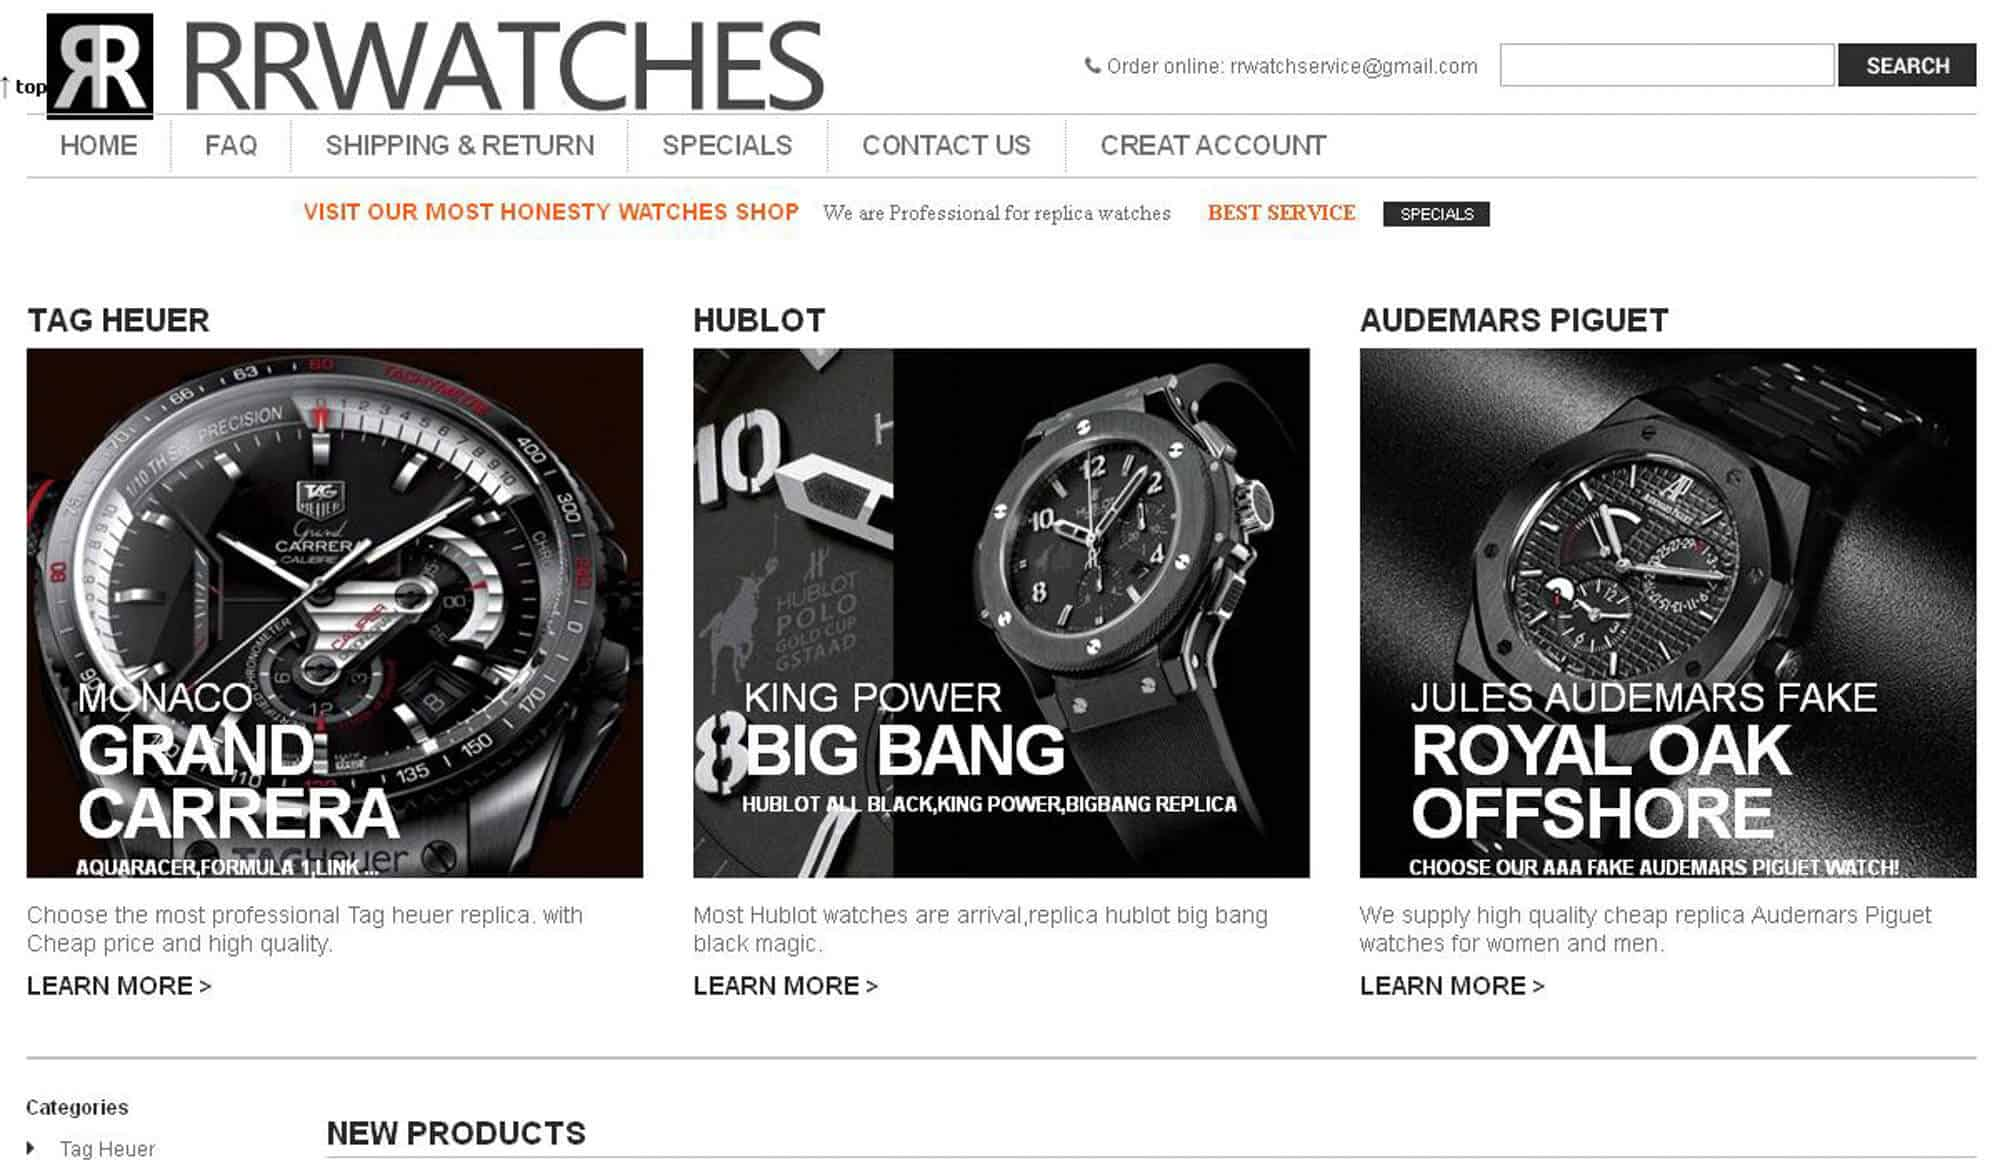 Replica watches quality - 15 Reasons Not To Buy A Replica Counterfeit Or Fake Watch Gentleman S Gazette